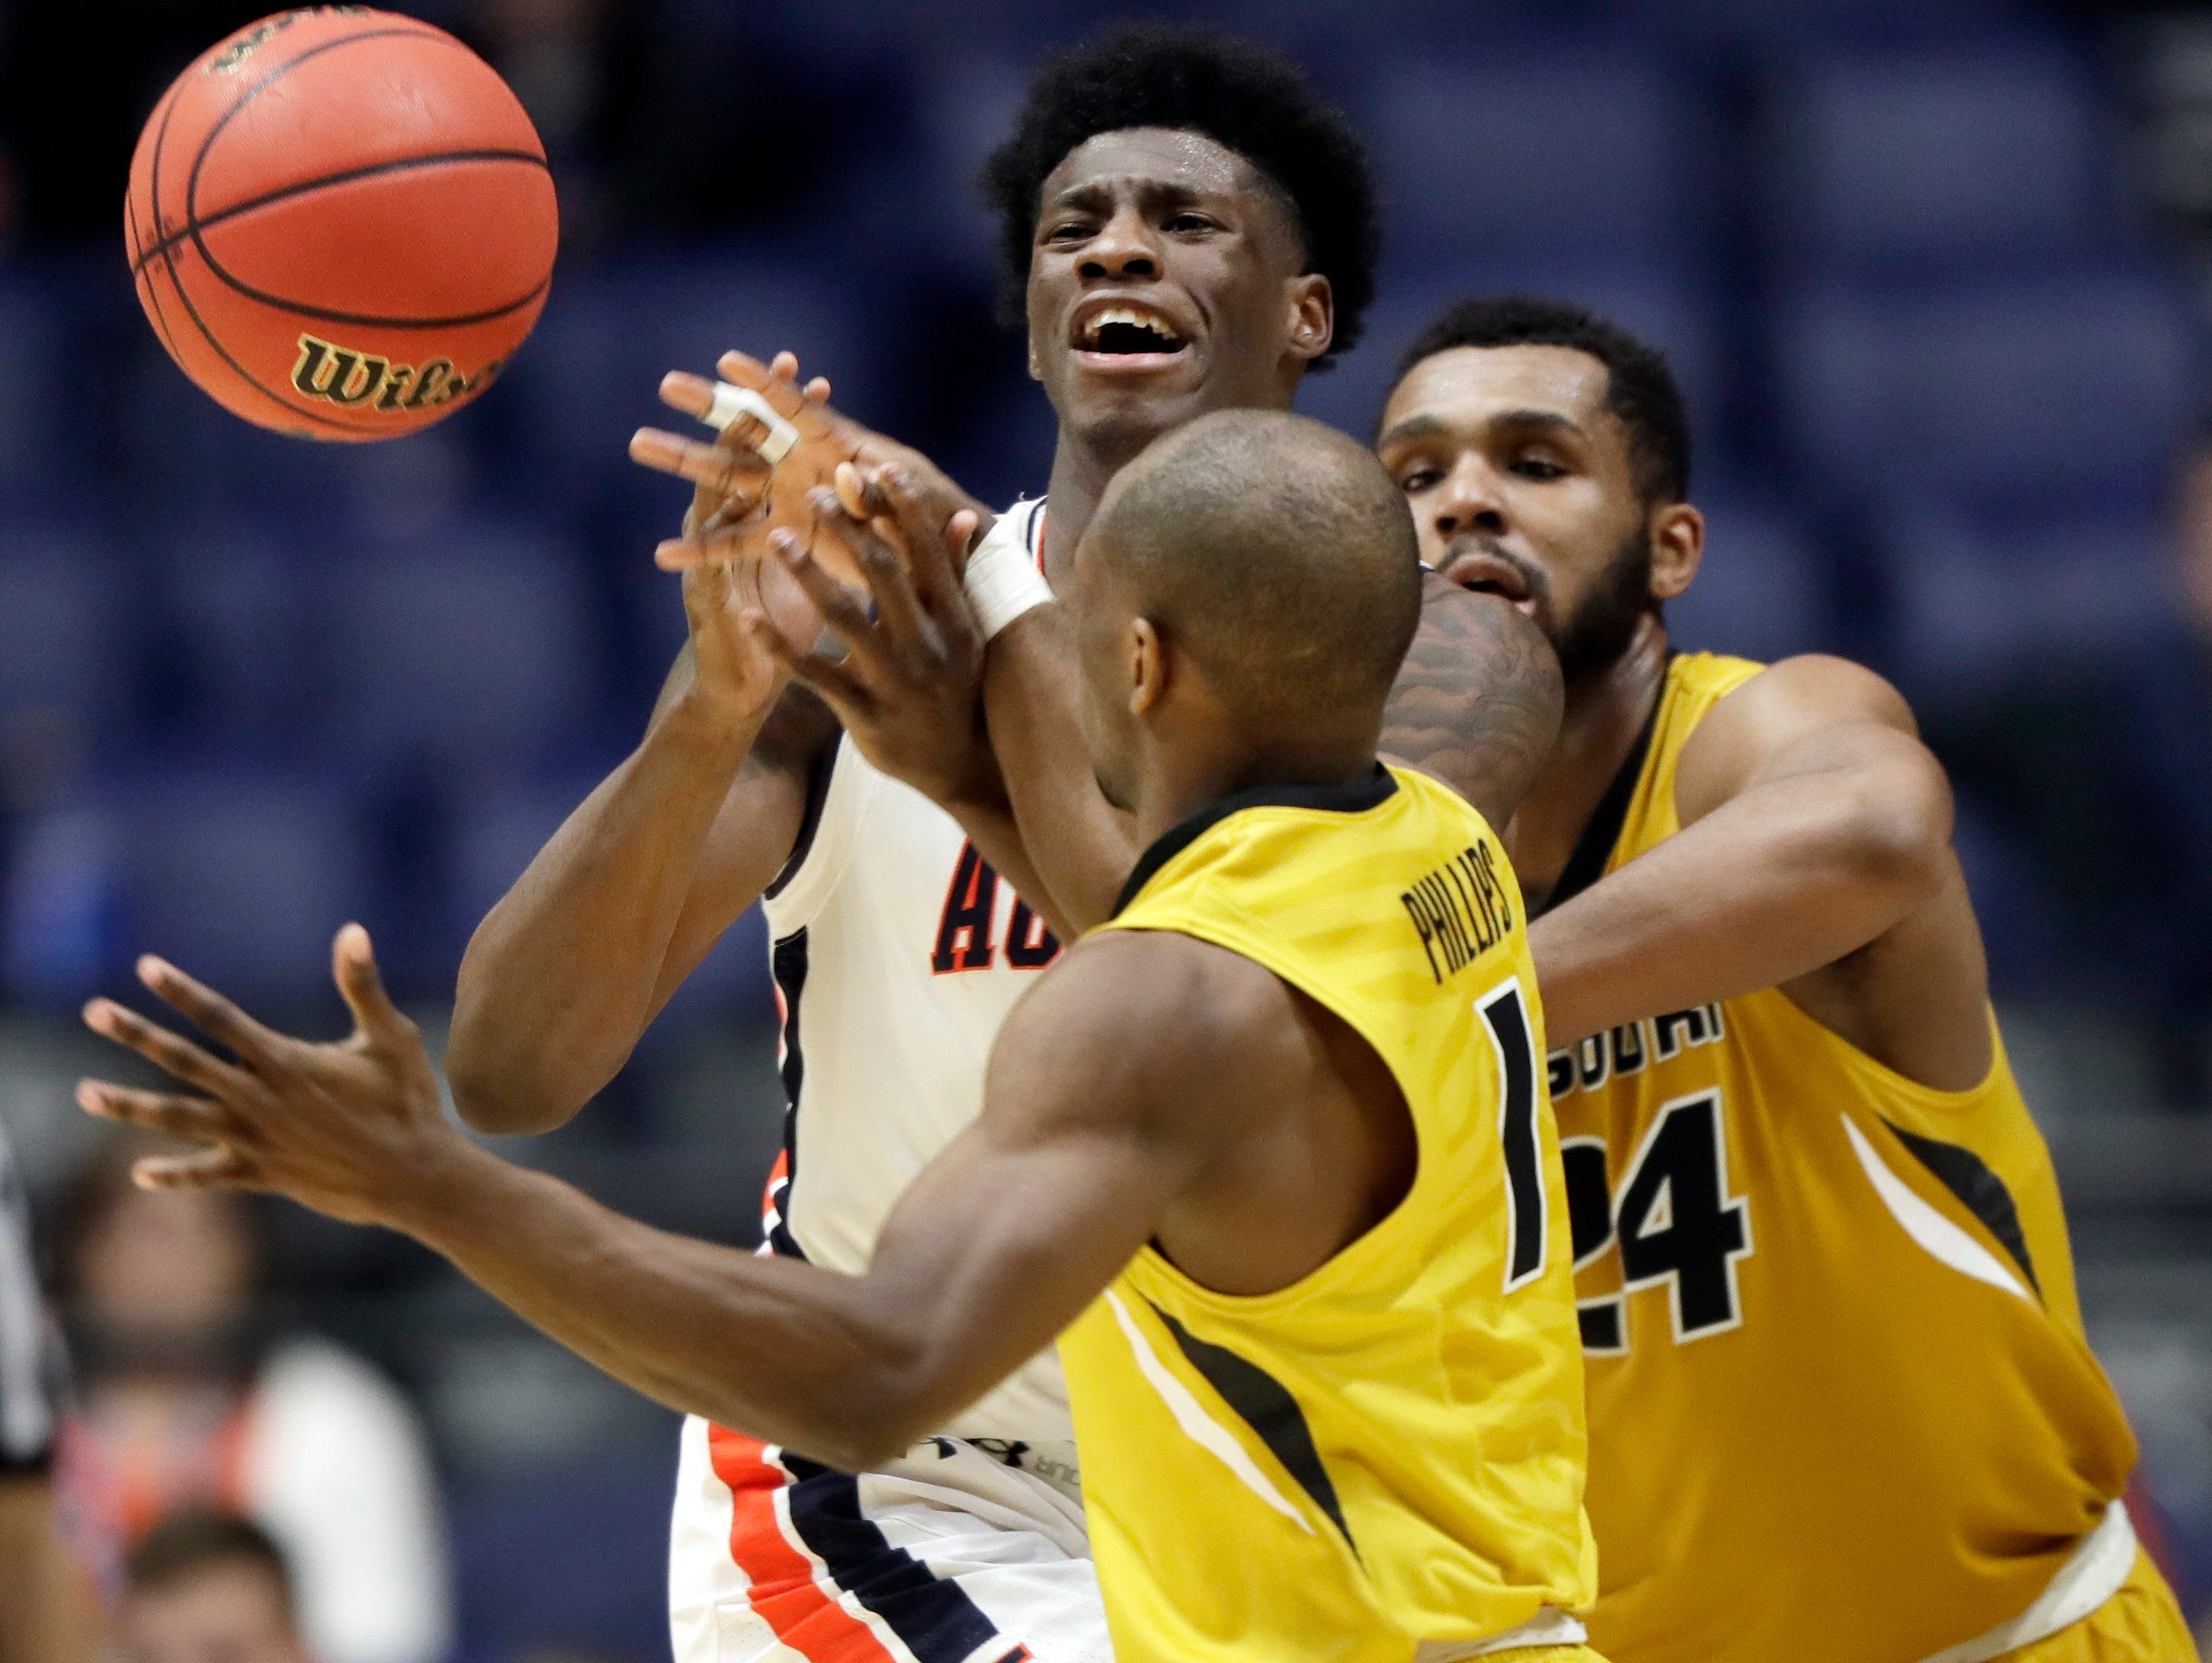 Auburn forward Danjel Purifoy, left, loses the ball as he is defended by Terrence Phillips (1) and Kevin Puryear (24) during the second half of an NCAA college basketball game at the Southeastern Conference tournament Wednesday, March 8, 2017, in Nashville, Tenn.